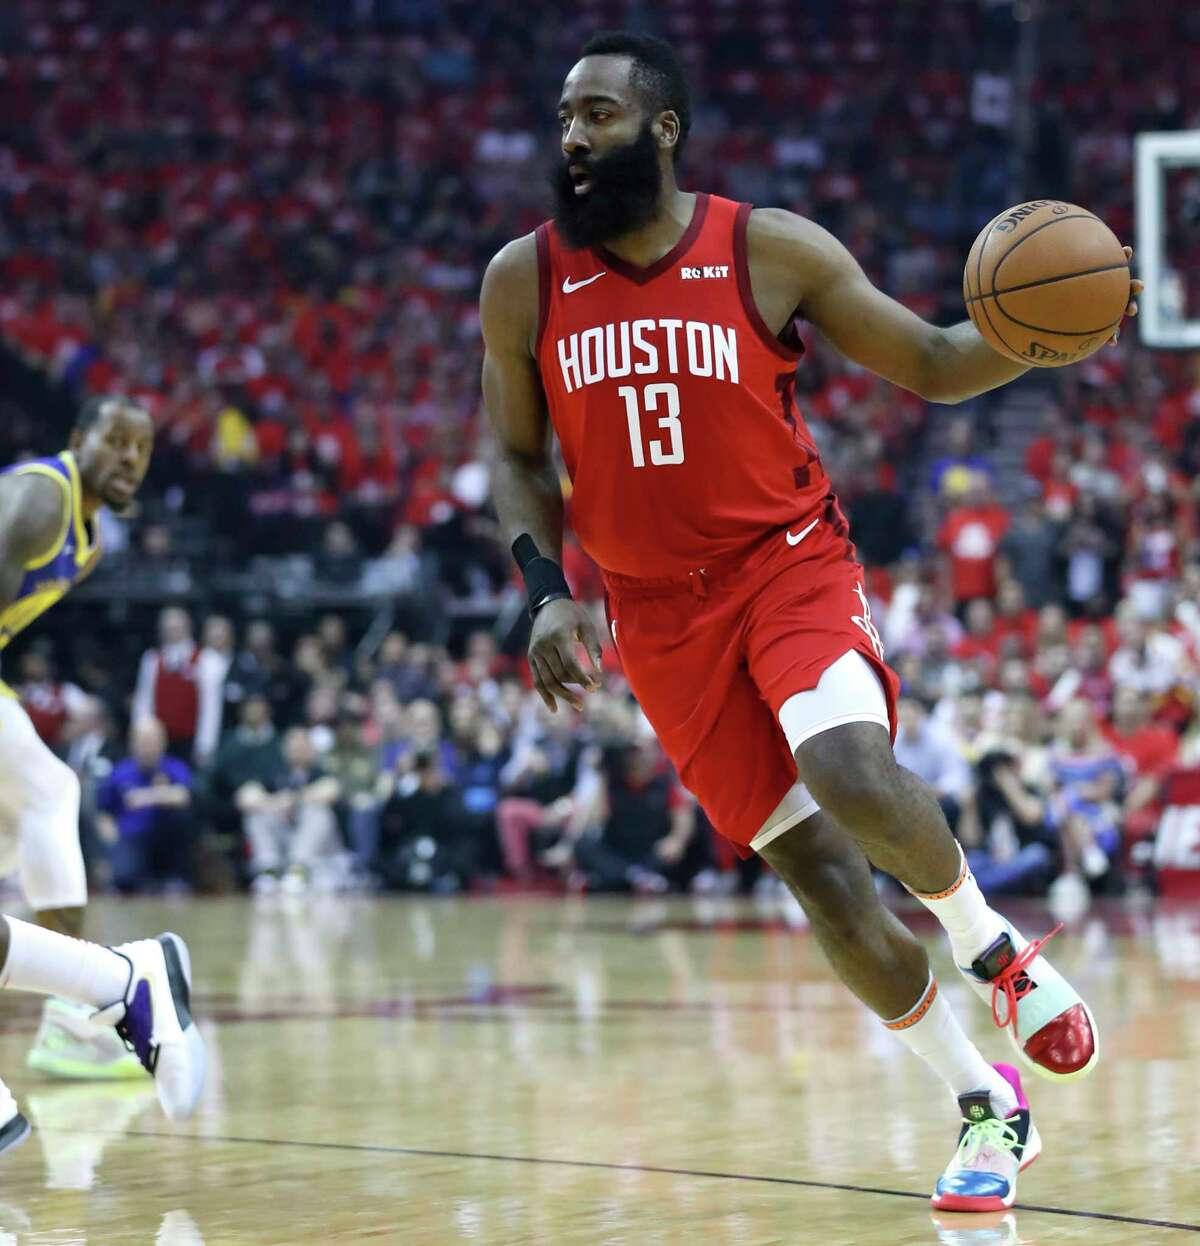 Houston Rockets guard James Harden (13) takes the ball up the court against the Golden State Warriors during the first half of Game 6 of the NBA Western Conference semifinals at Toyota Center on Friday, May 10, 2019, in Houston.